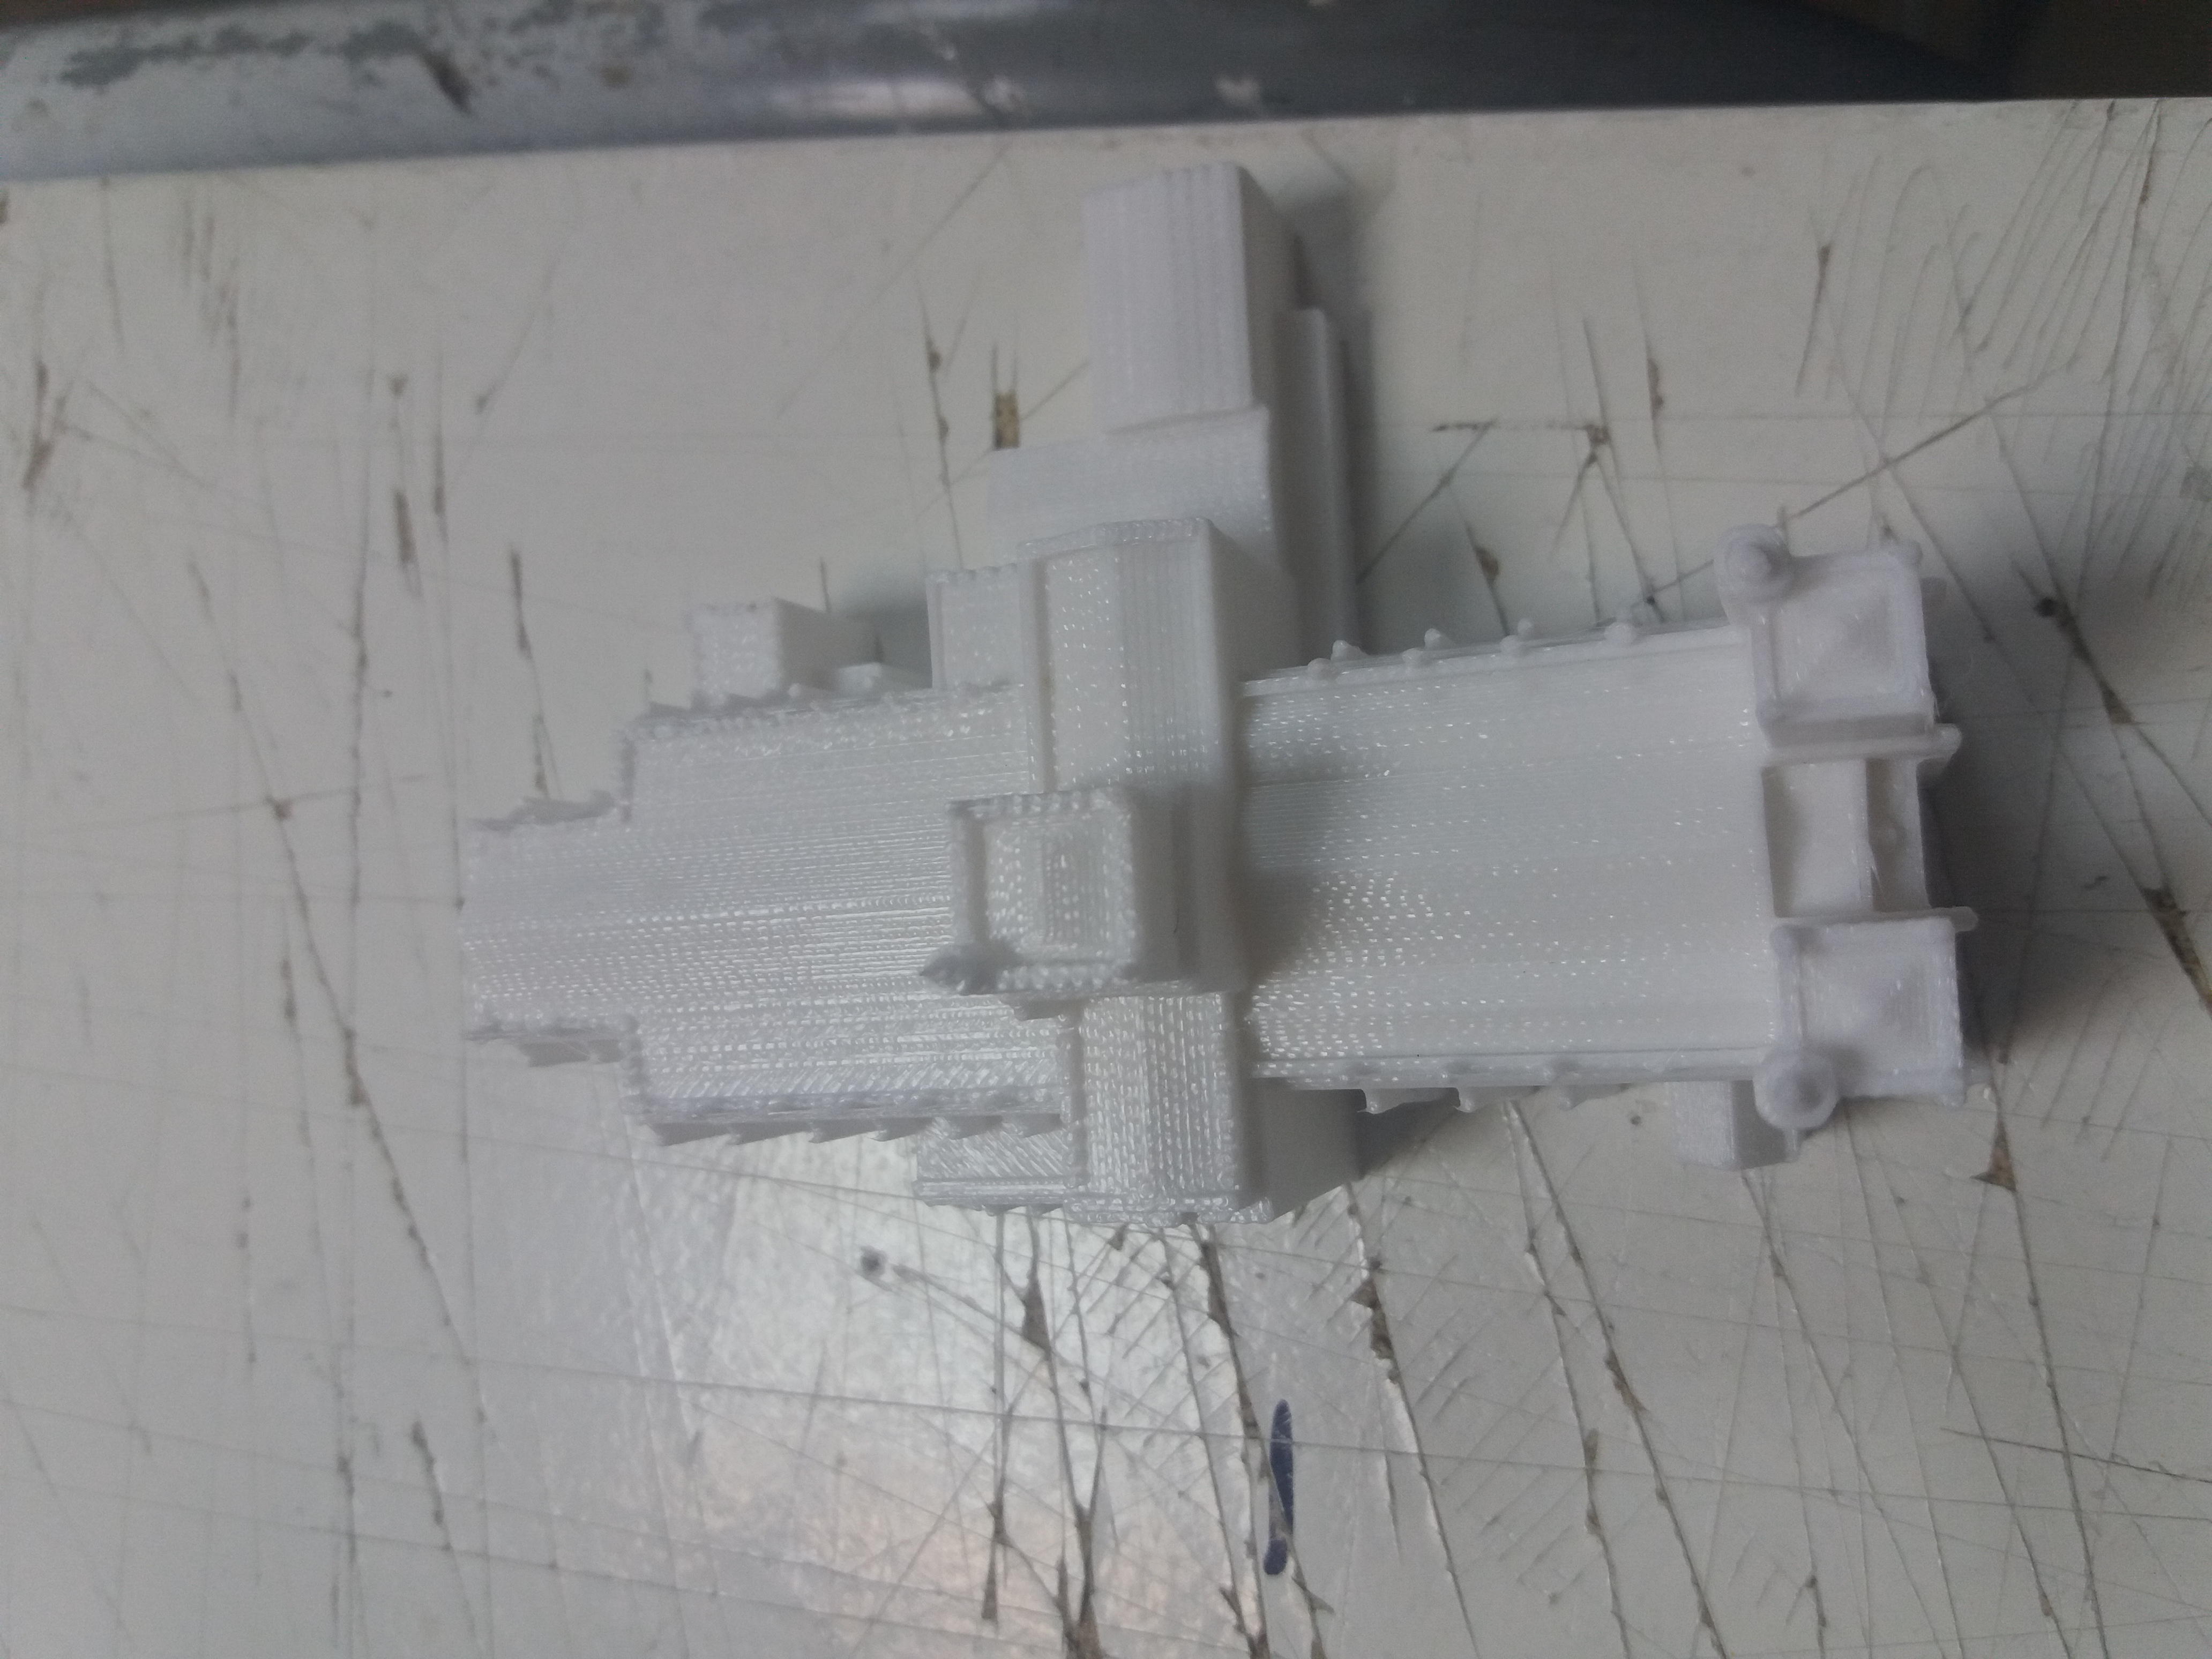 20190515_104617.jpg Download free OBJ file Bristol Cathedral • 3D printer template, jpmansilla23